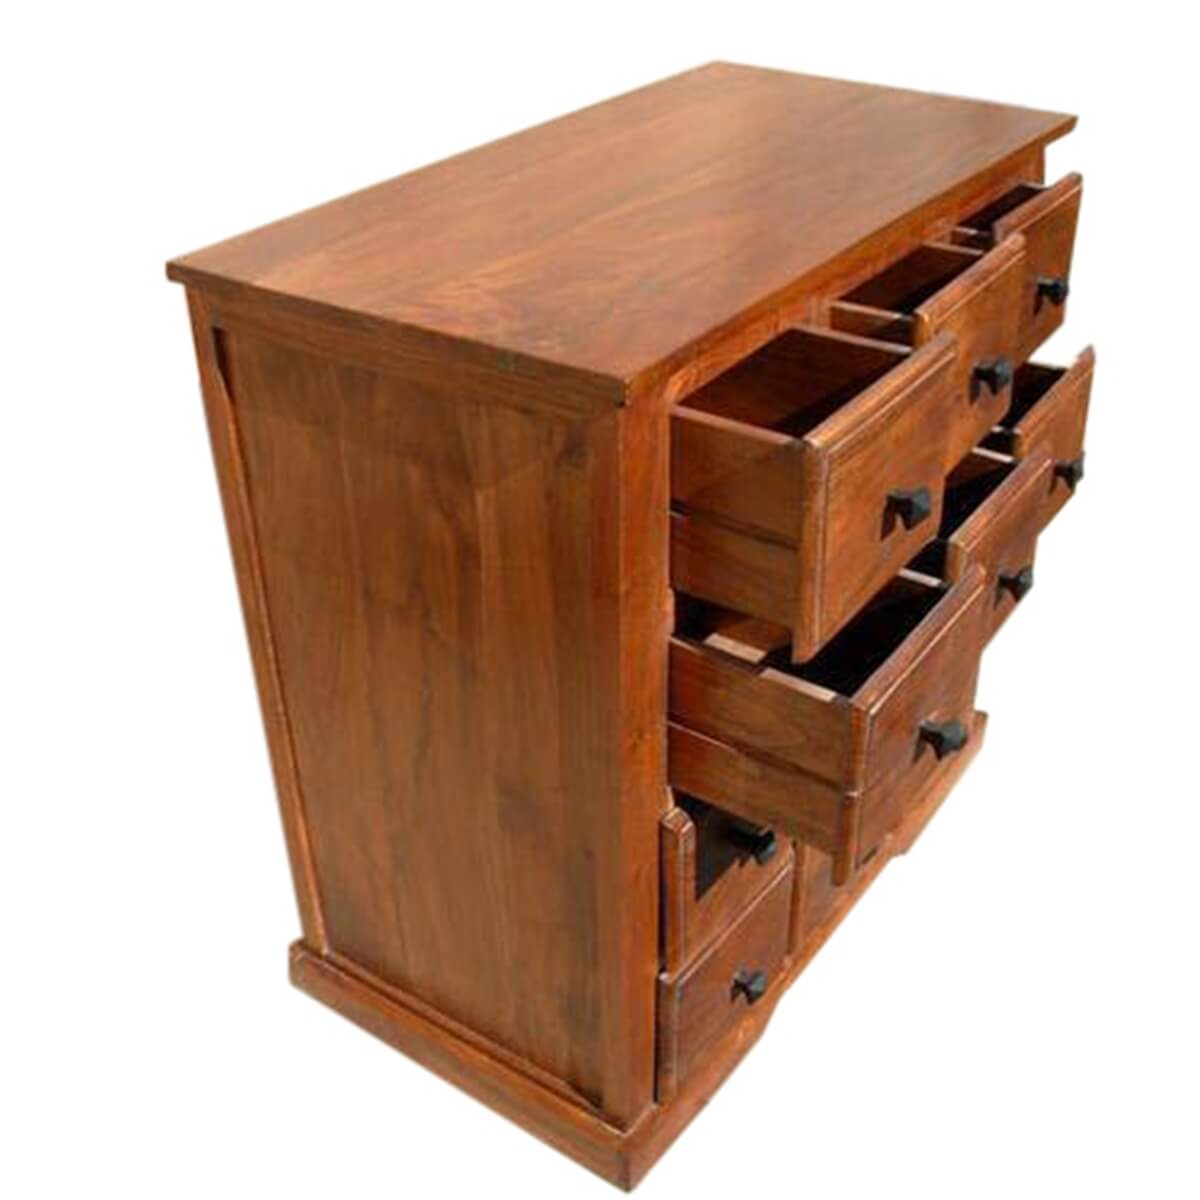 Handmade wooden bedroom storage dresser chest with drawers